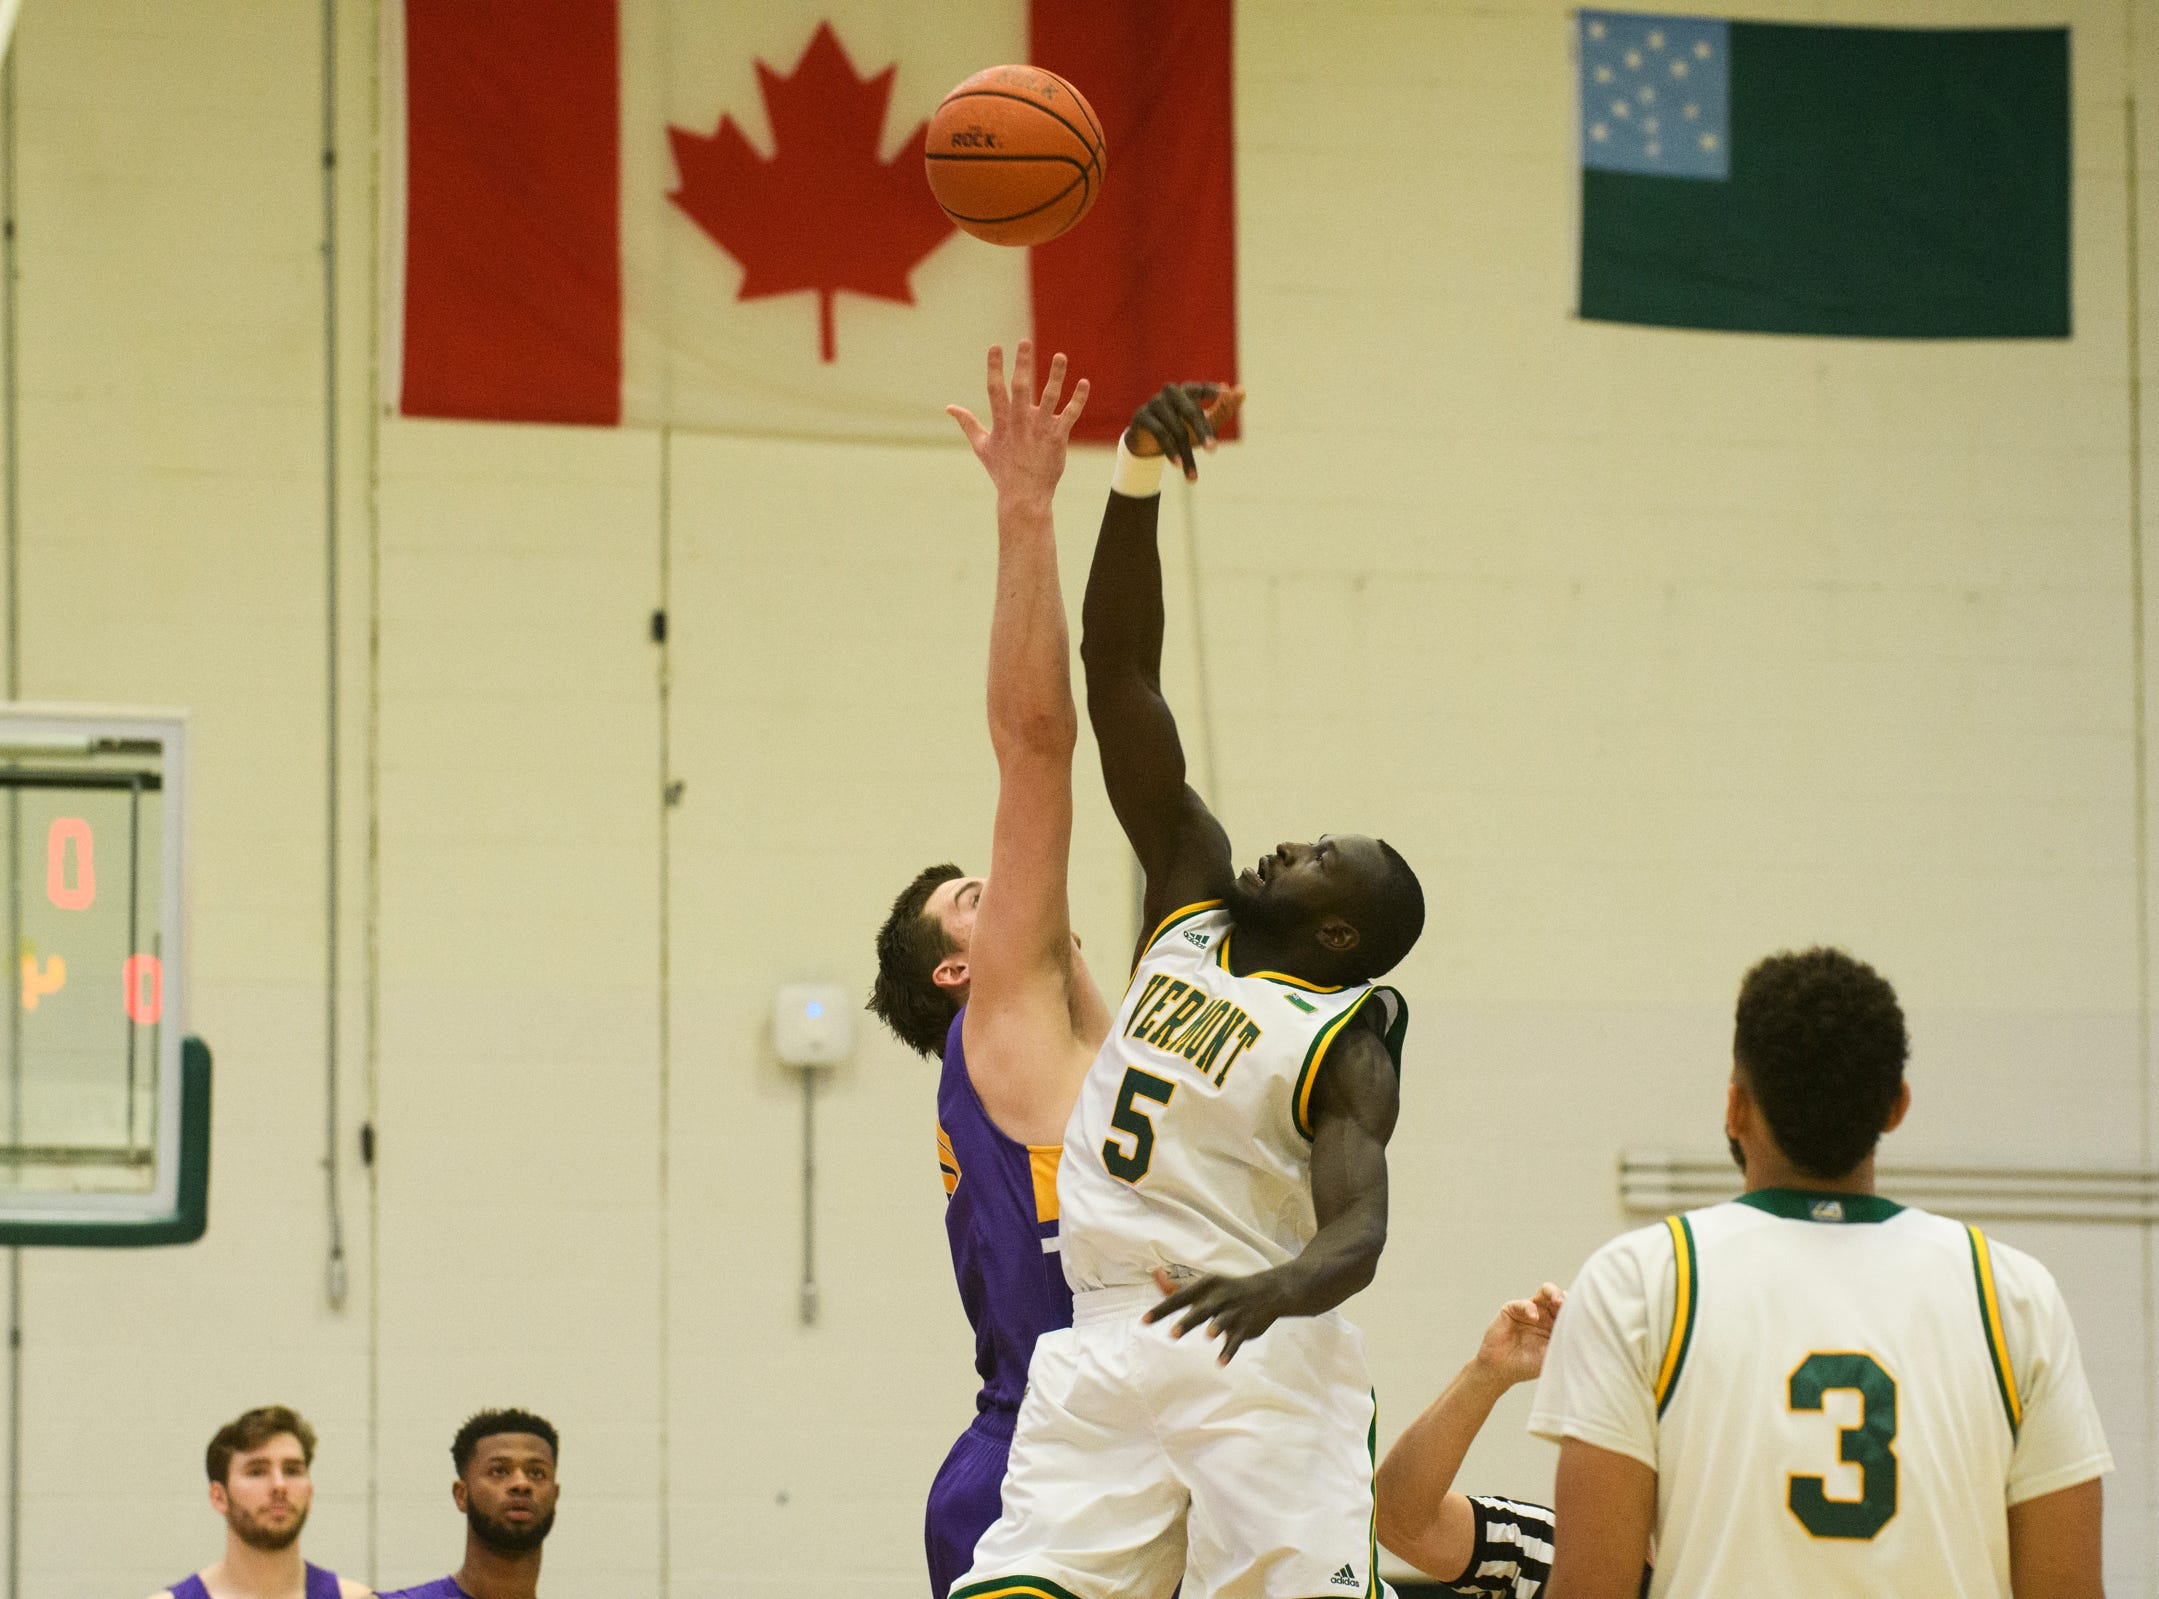 Vermont forward Samuel Dingba (5) battles for the opening tip off during the men's basketball game between the Albany Great Danes and the Vermont Catamounts at Patrick Gym on Saturday February 9, 2019 in Burlington, Vermont.